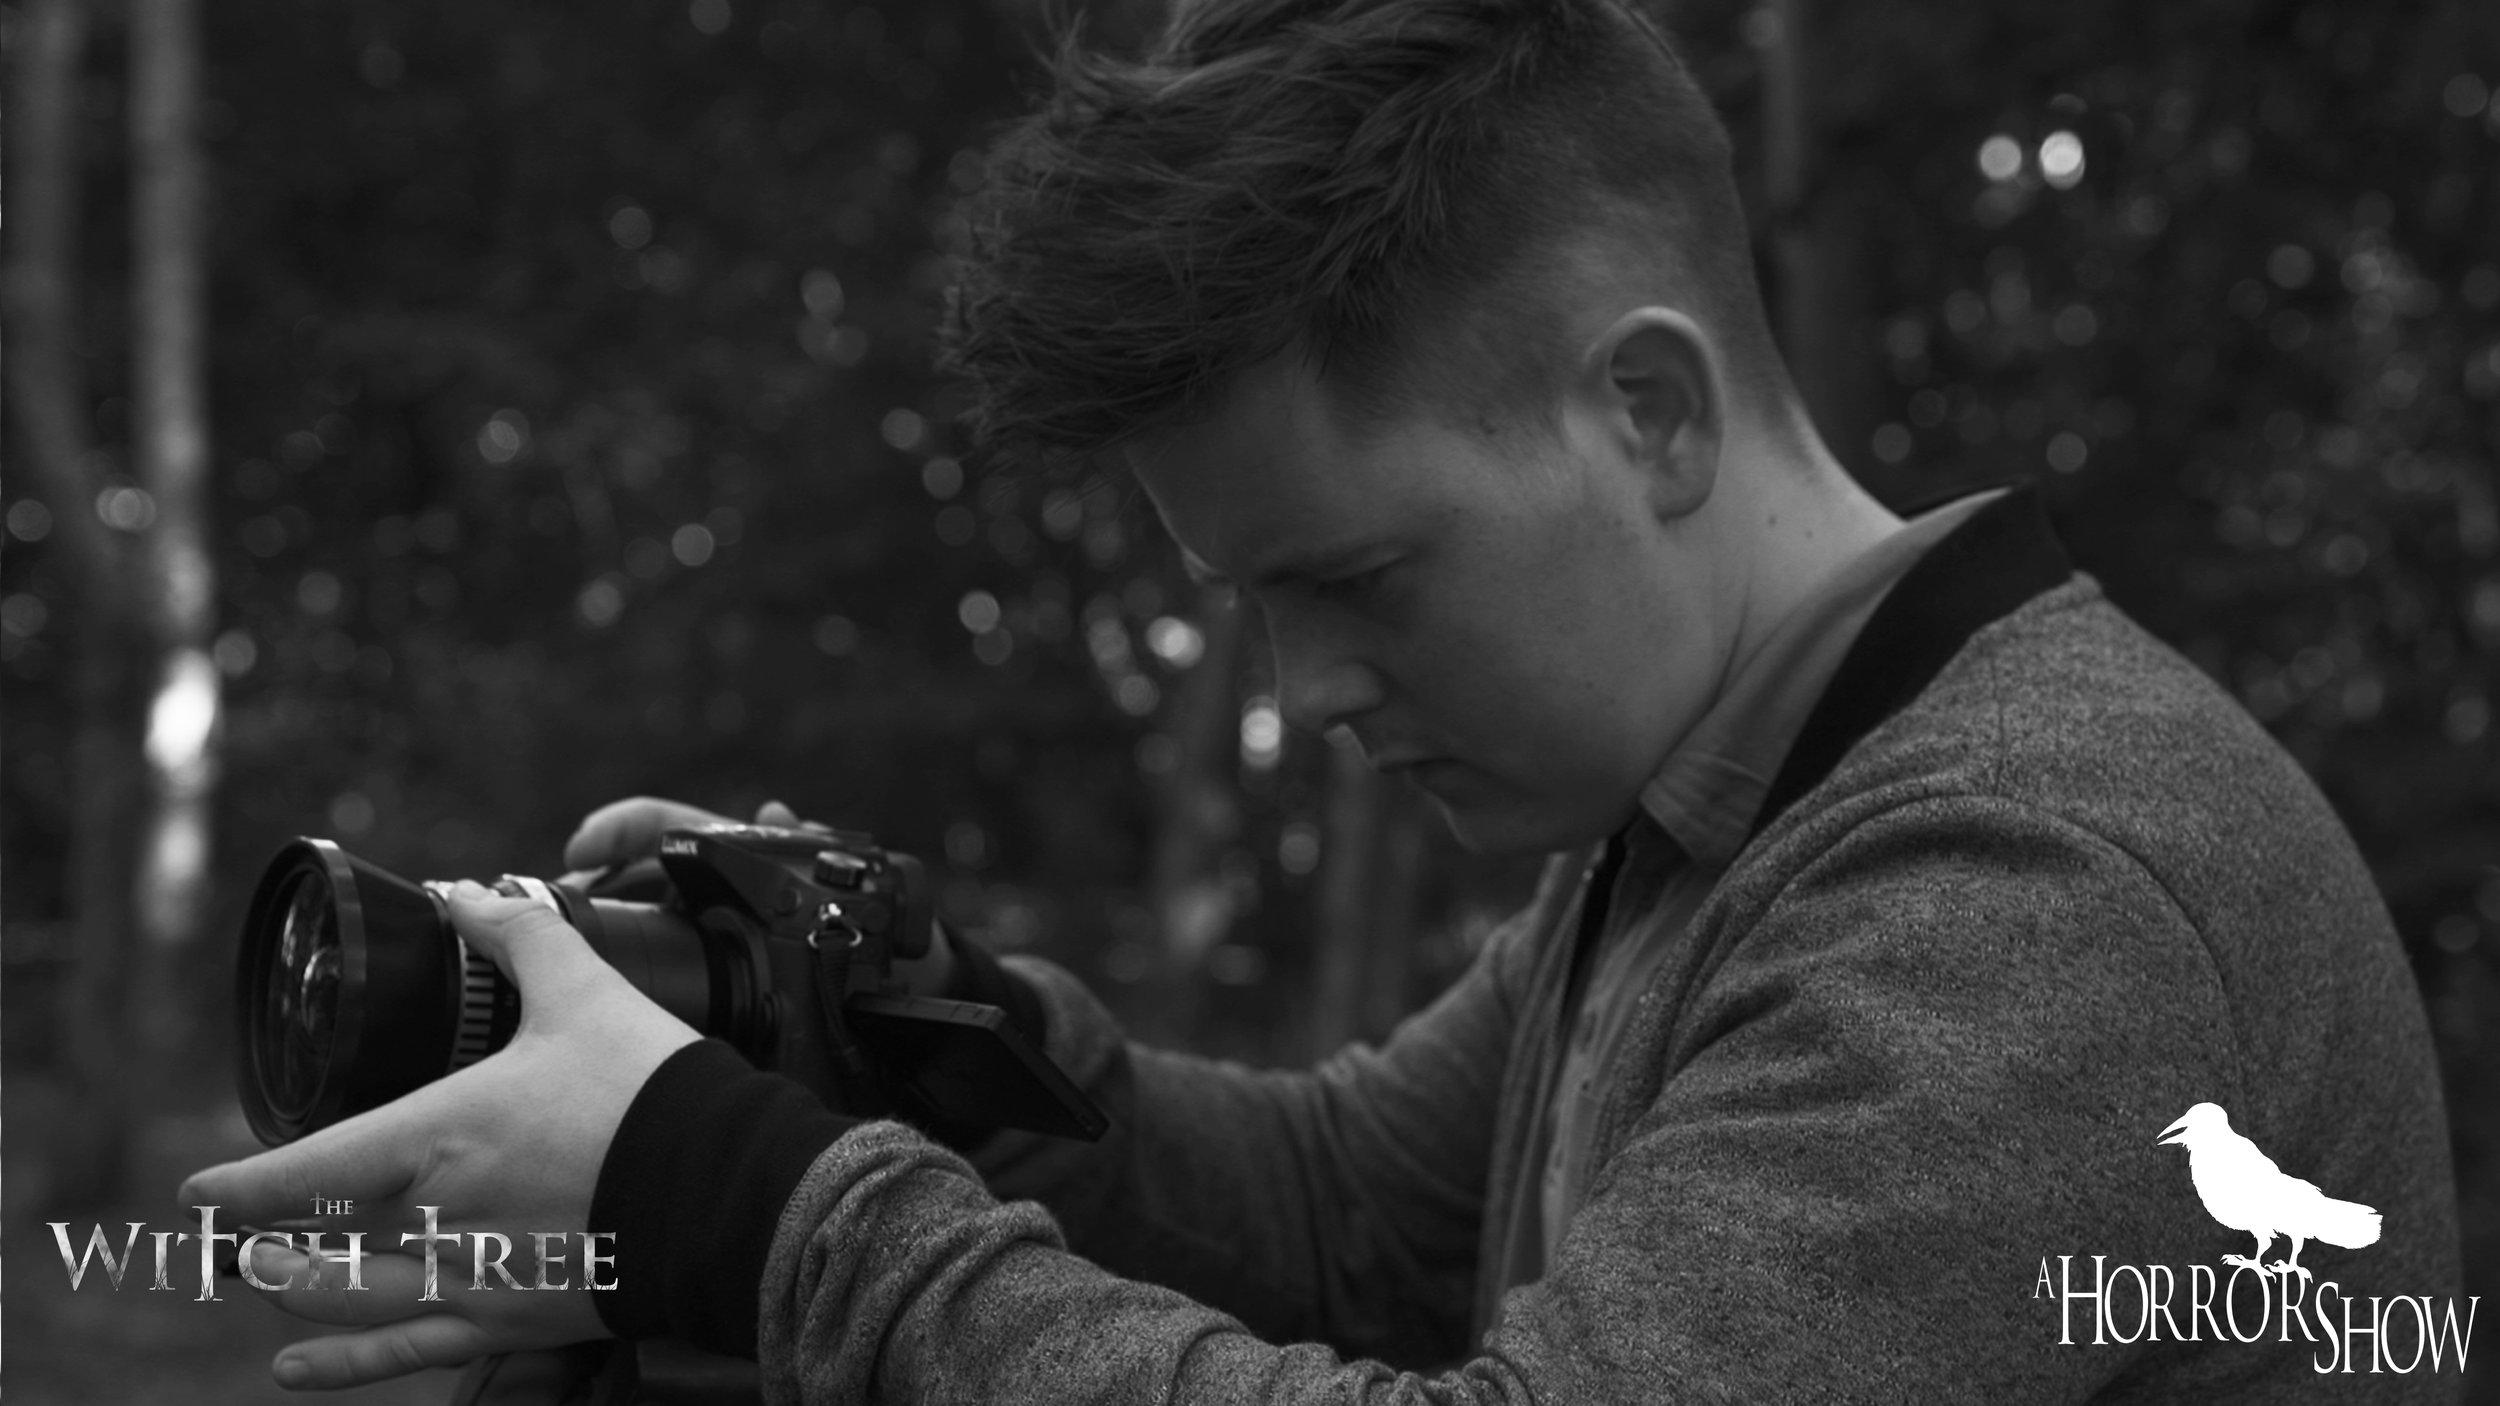 Director Lee Patrick Robinson behind the camera on The Witch Tree.